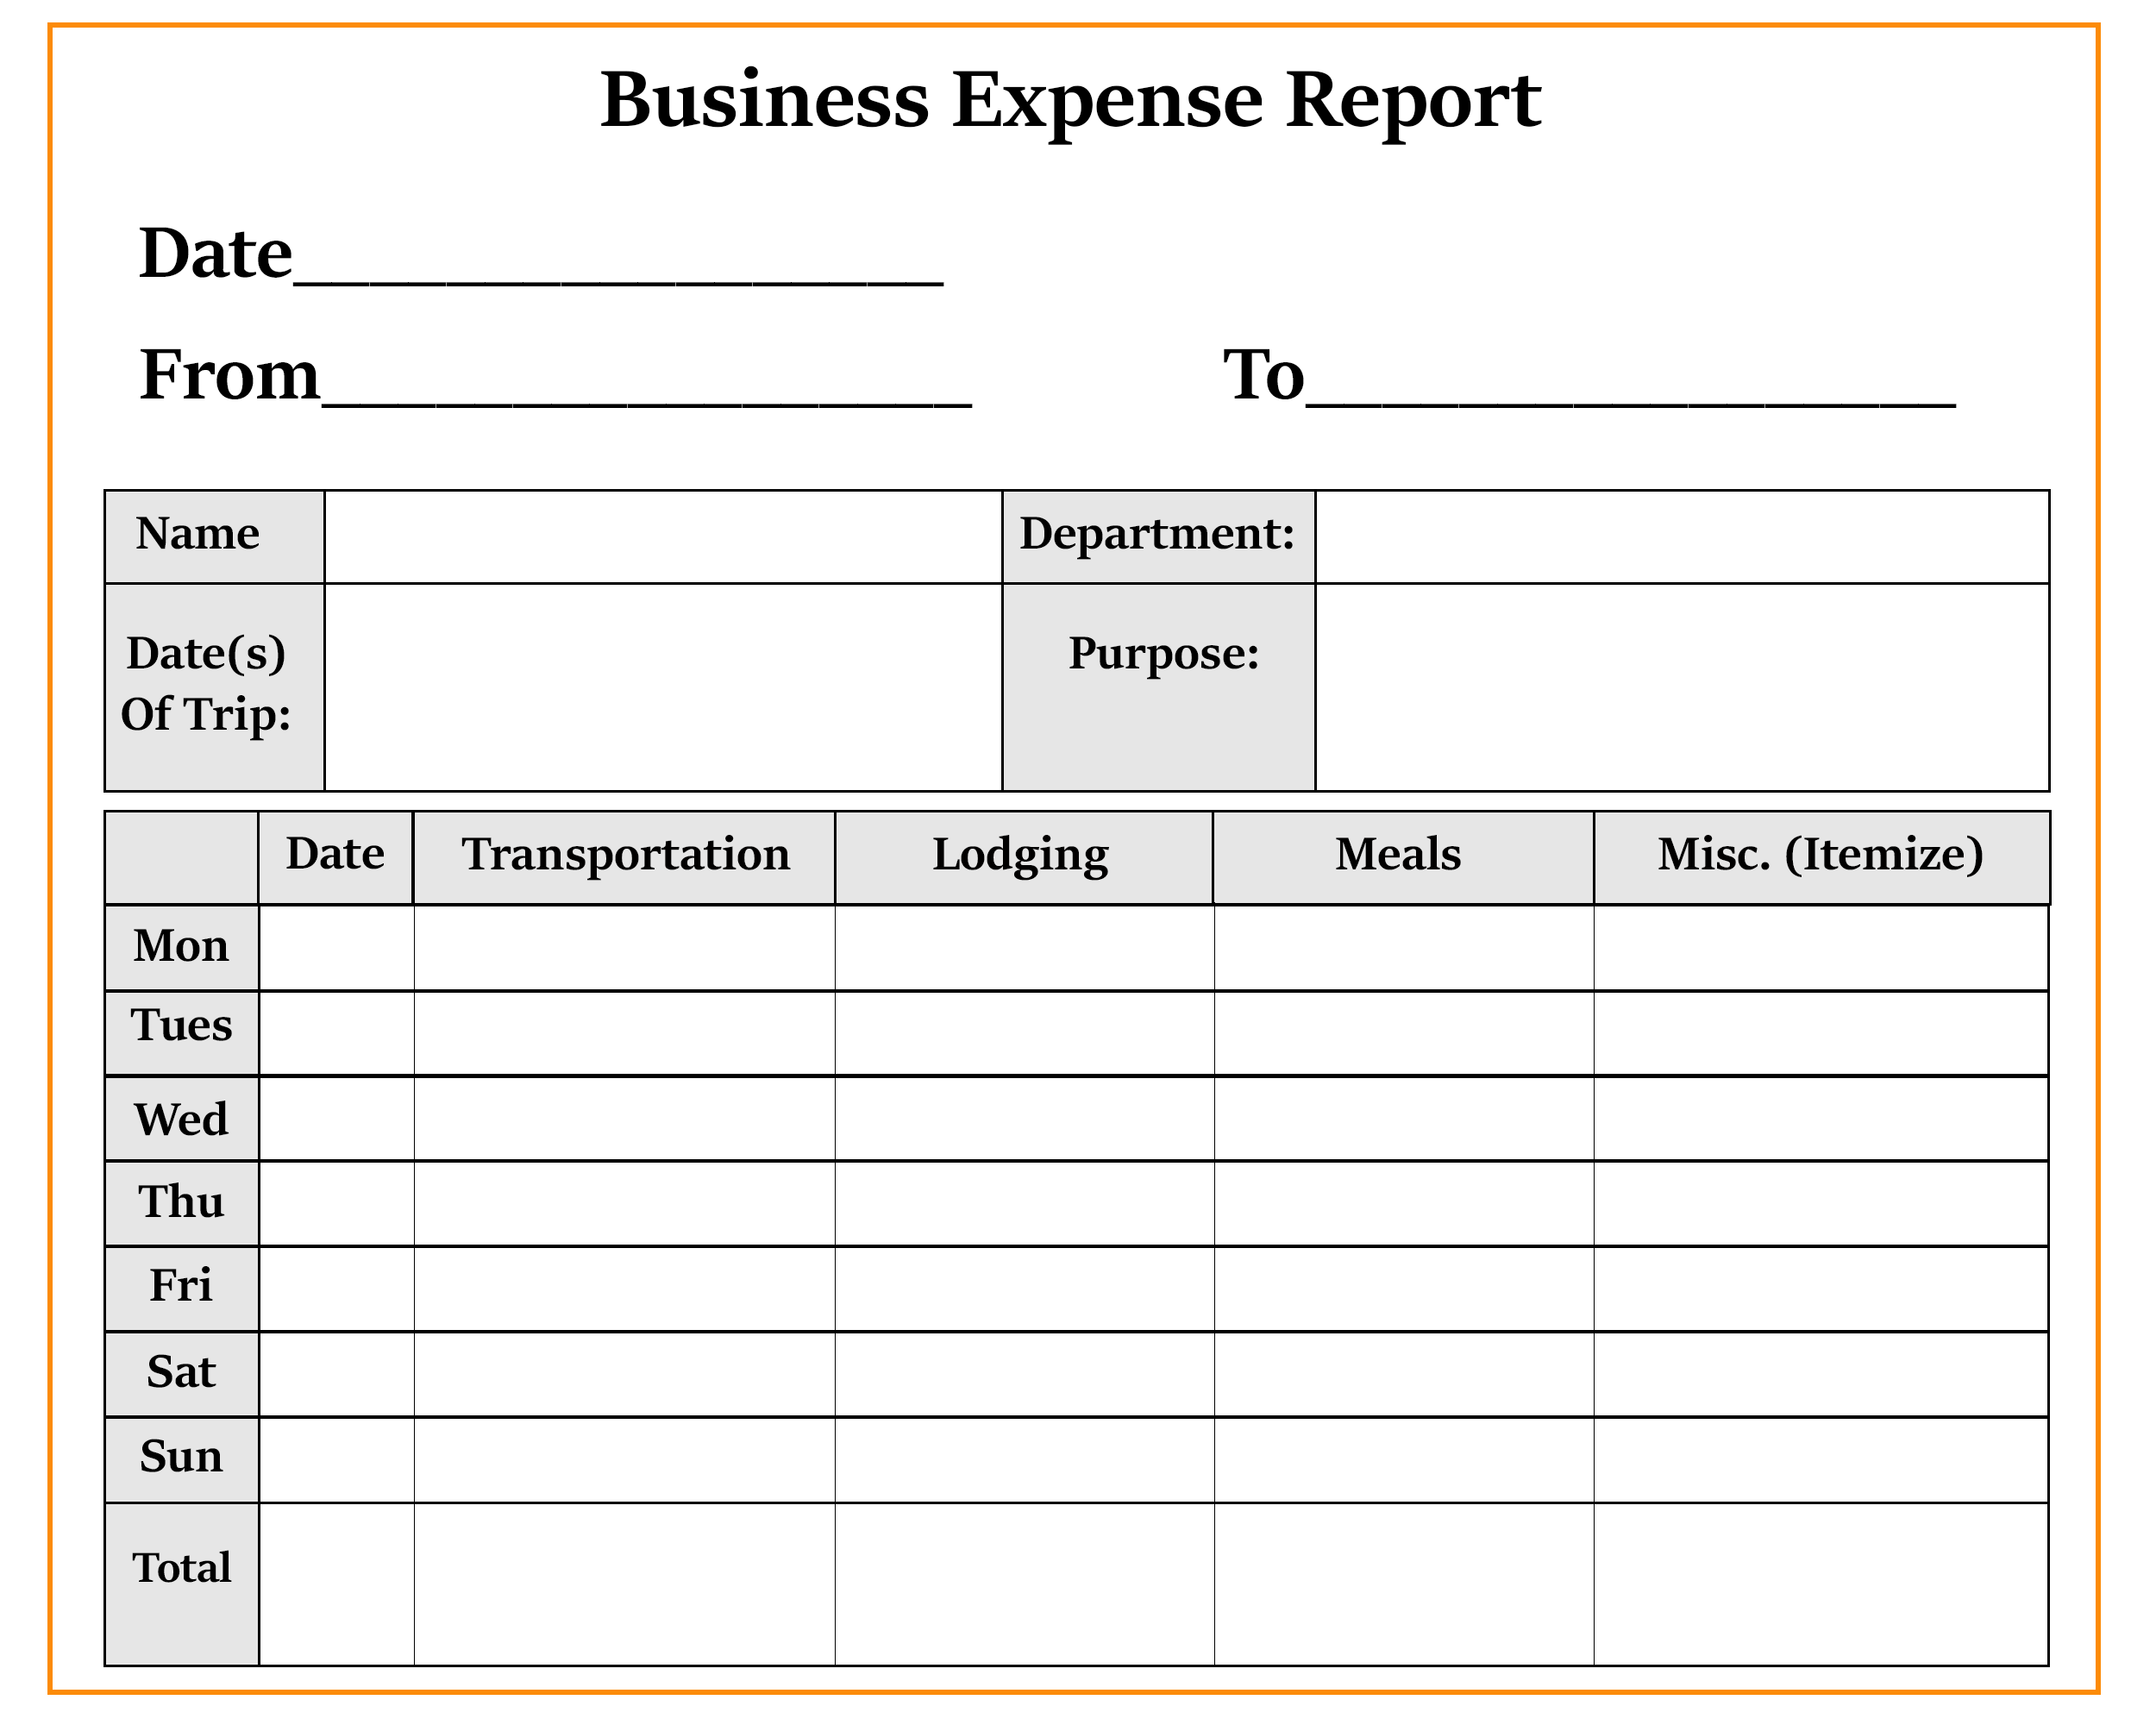 Business Expense Report Example